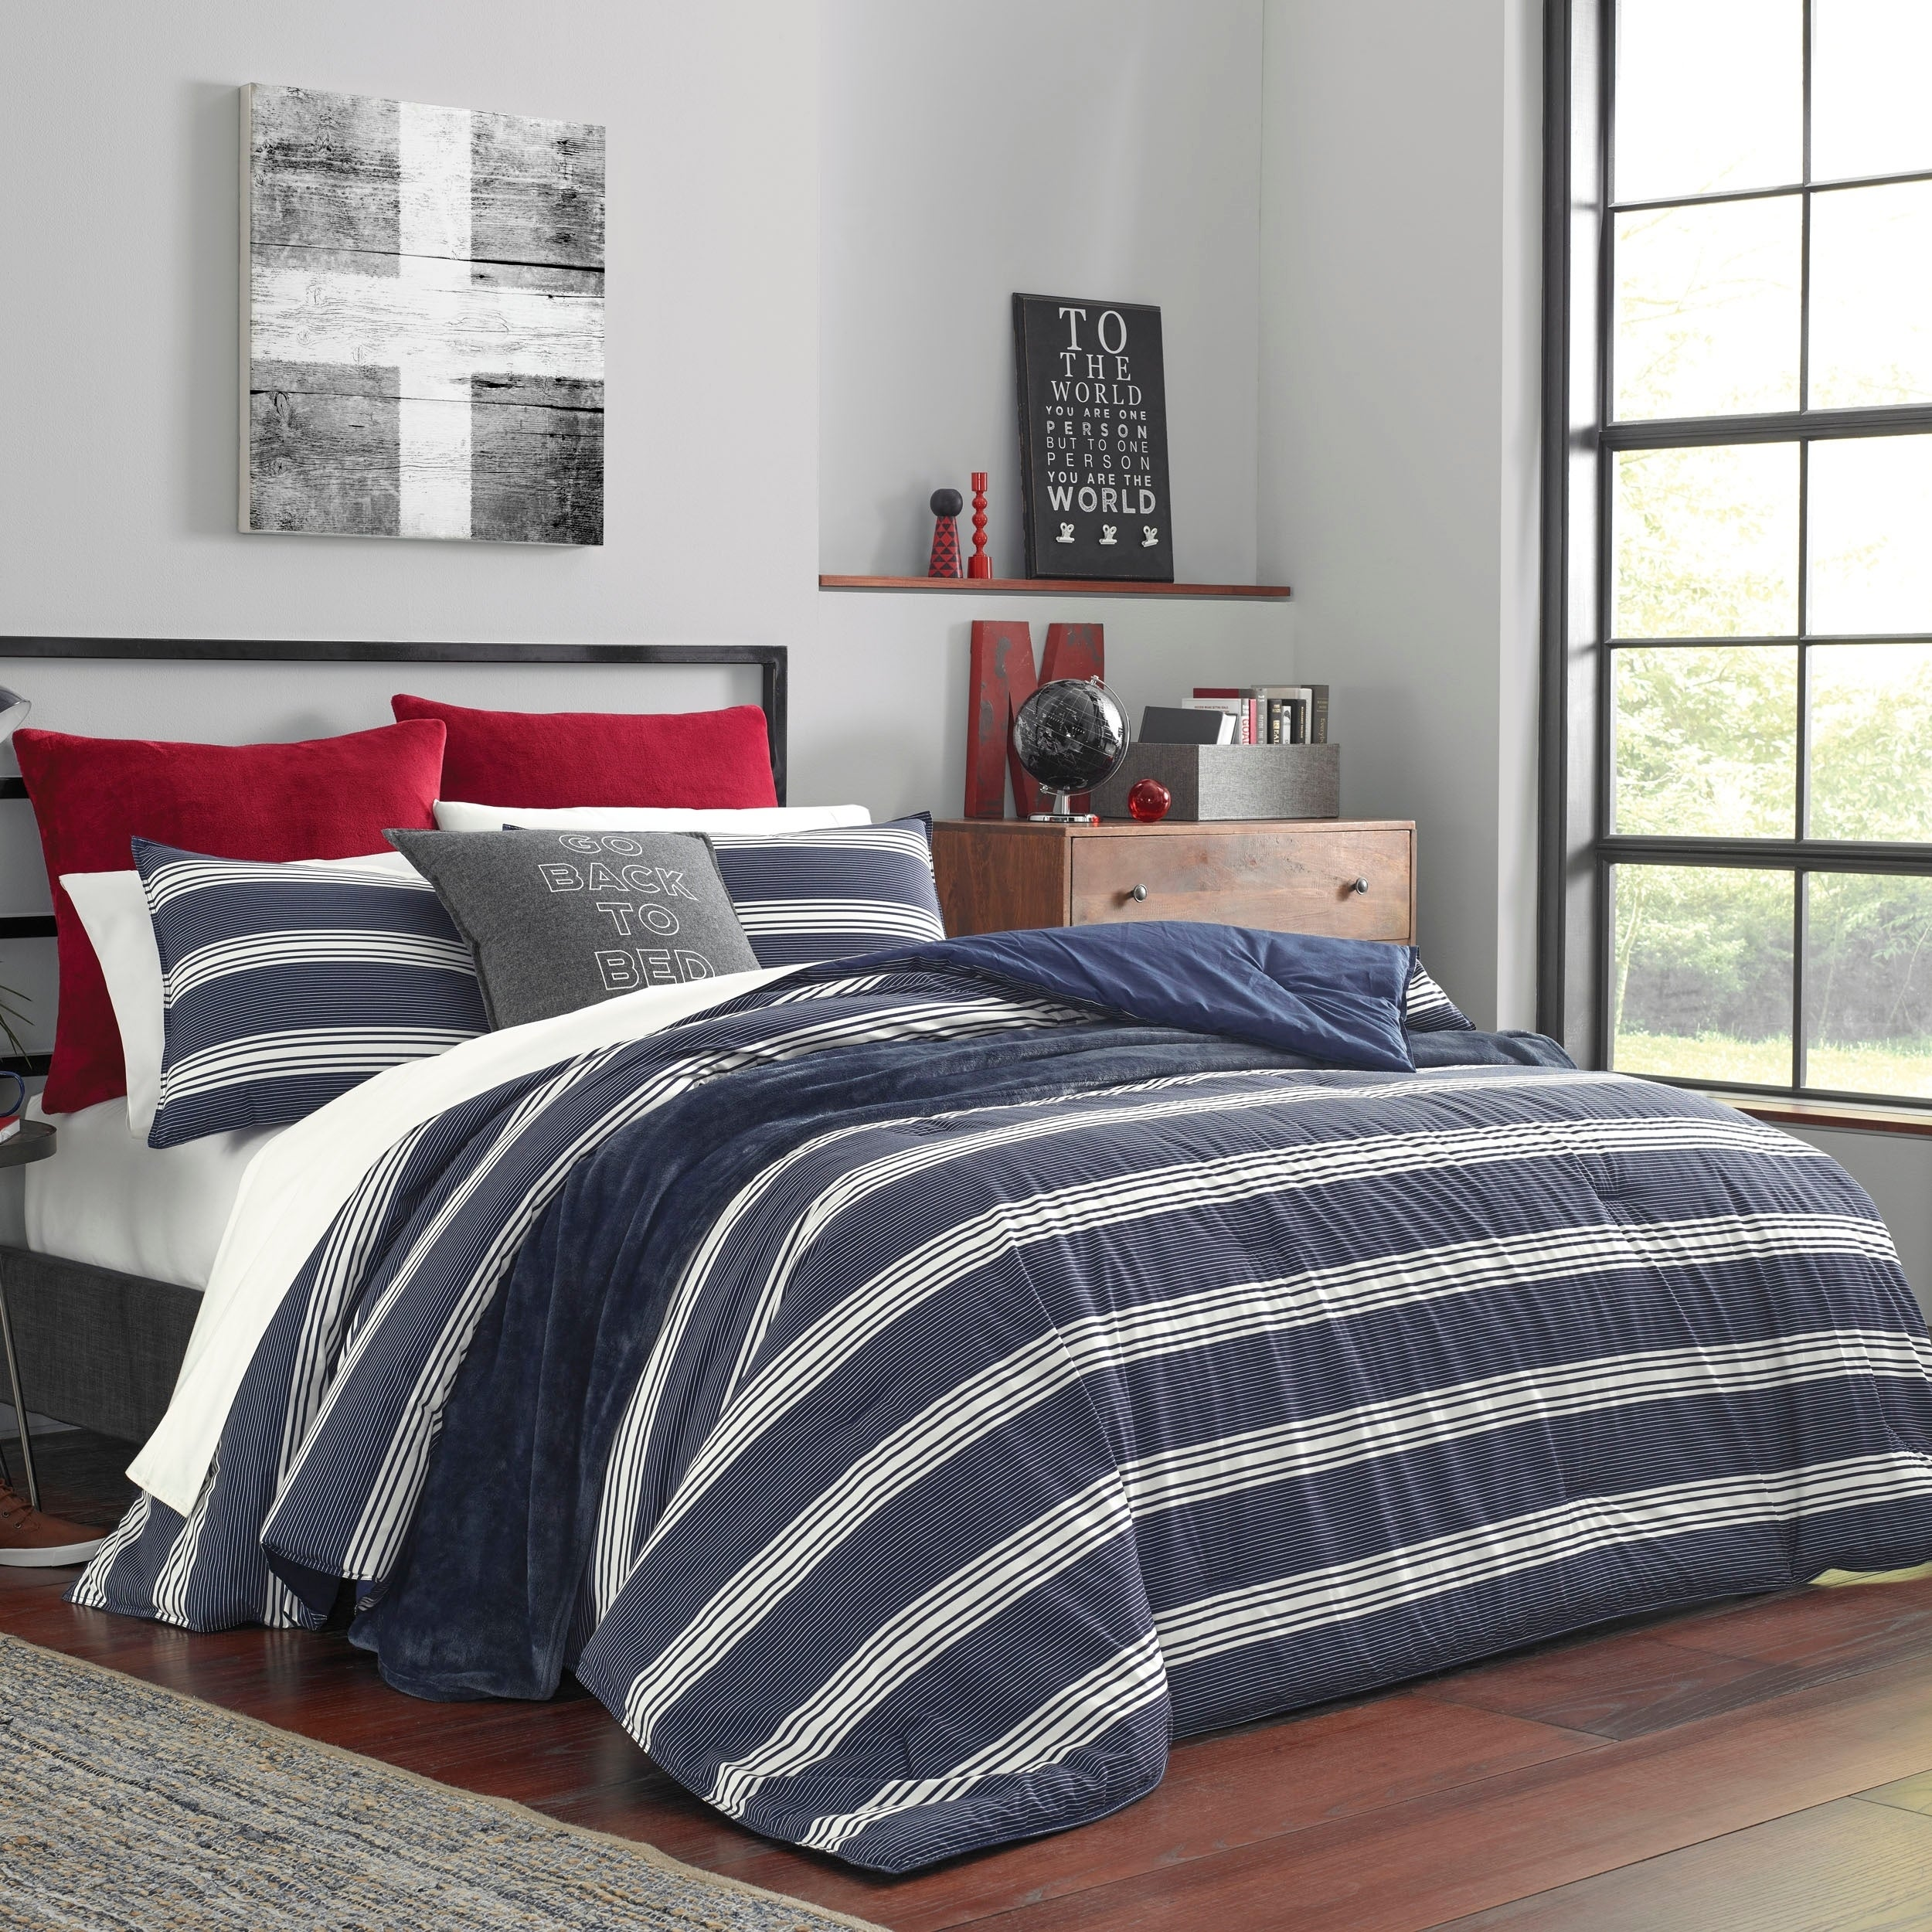 Nautica Craver Navy Comforter Set Overstock 27565962 Full Full Queen 3 Piece